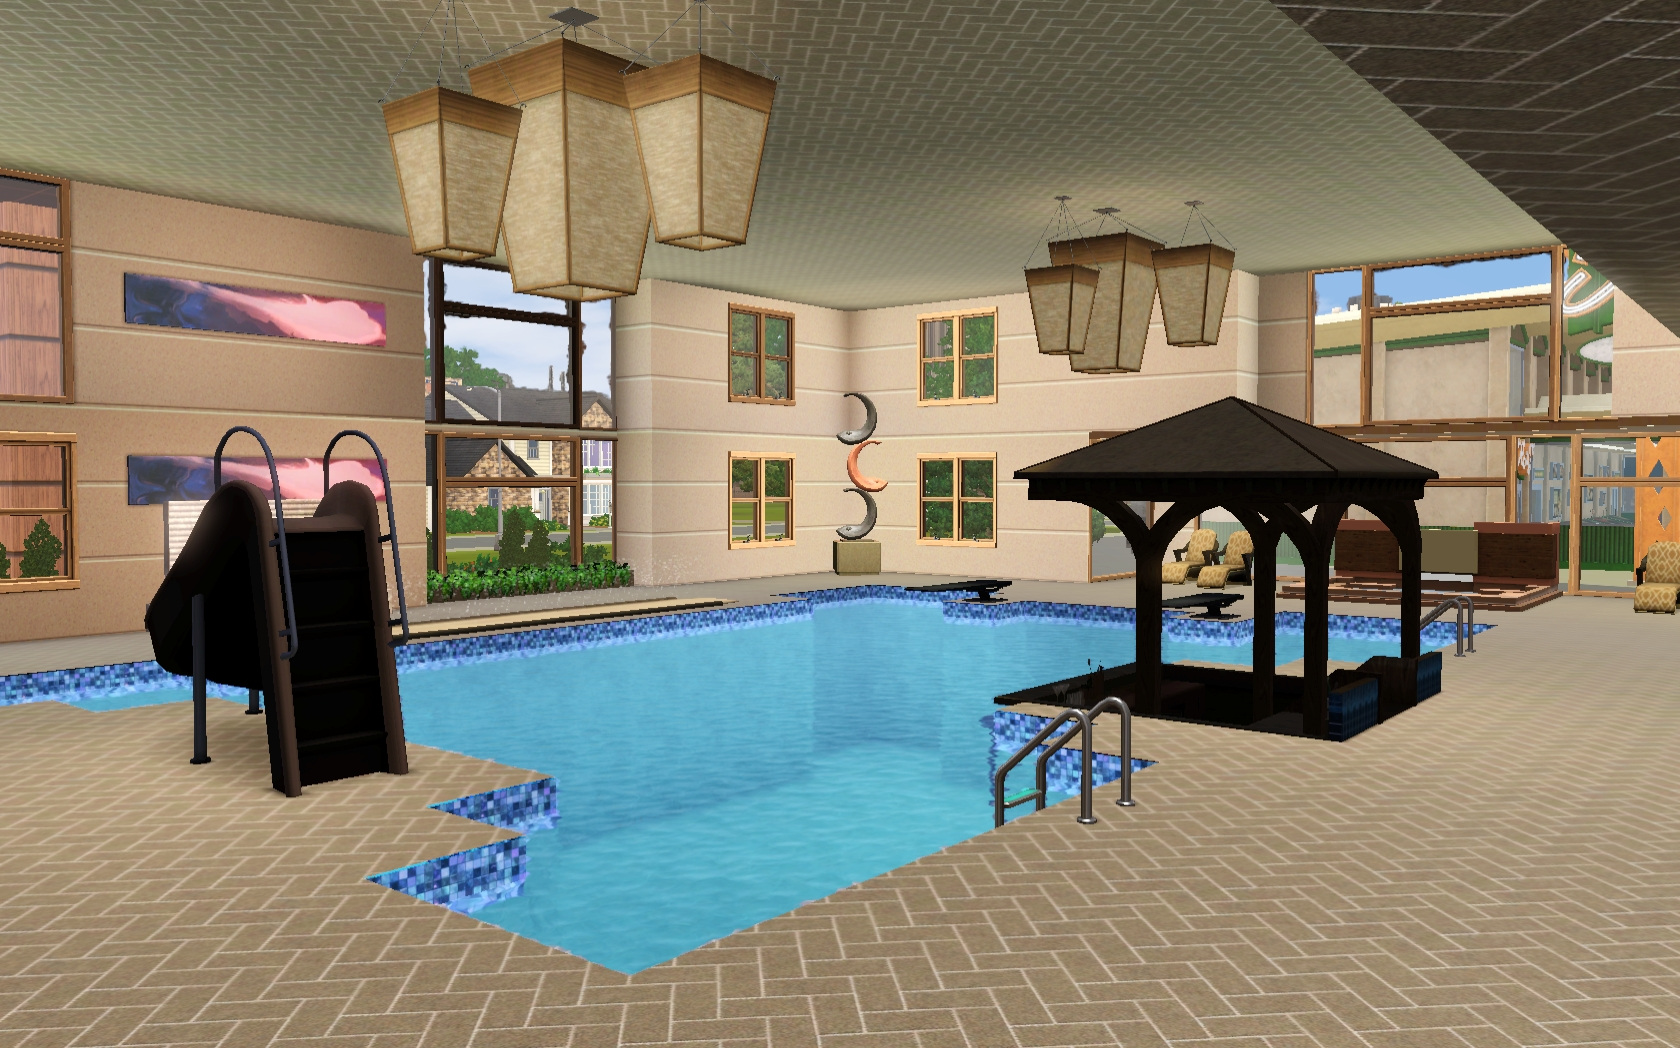 Sims 3 Pool Rund Drehen Mod The Sims Liquid H2o Indoor Pool